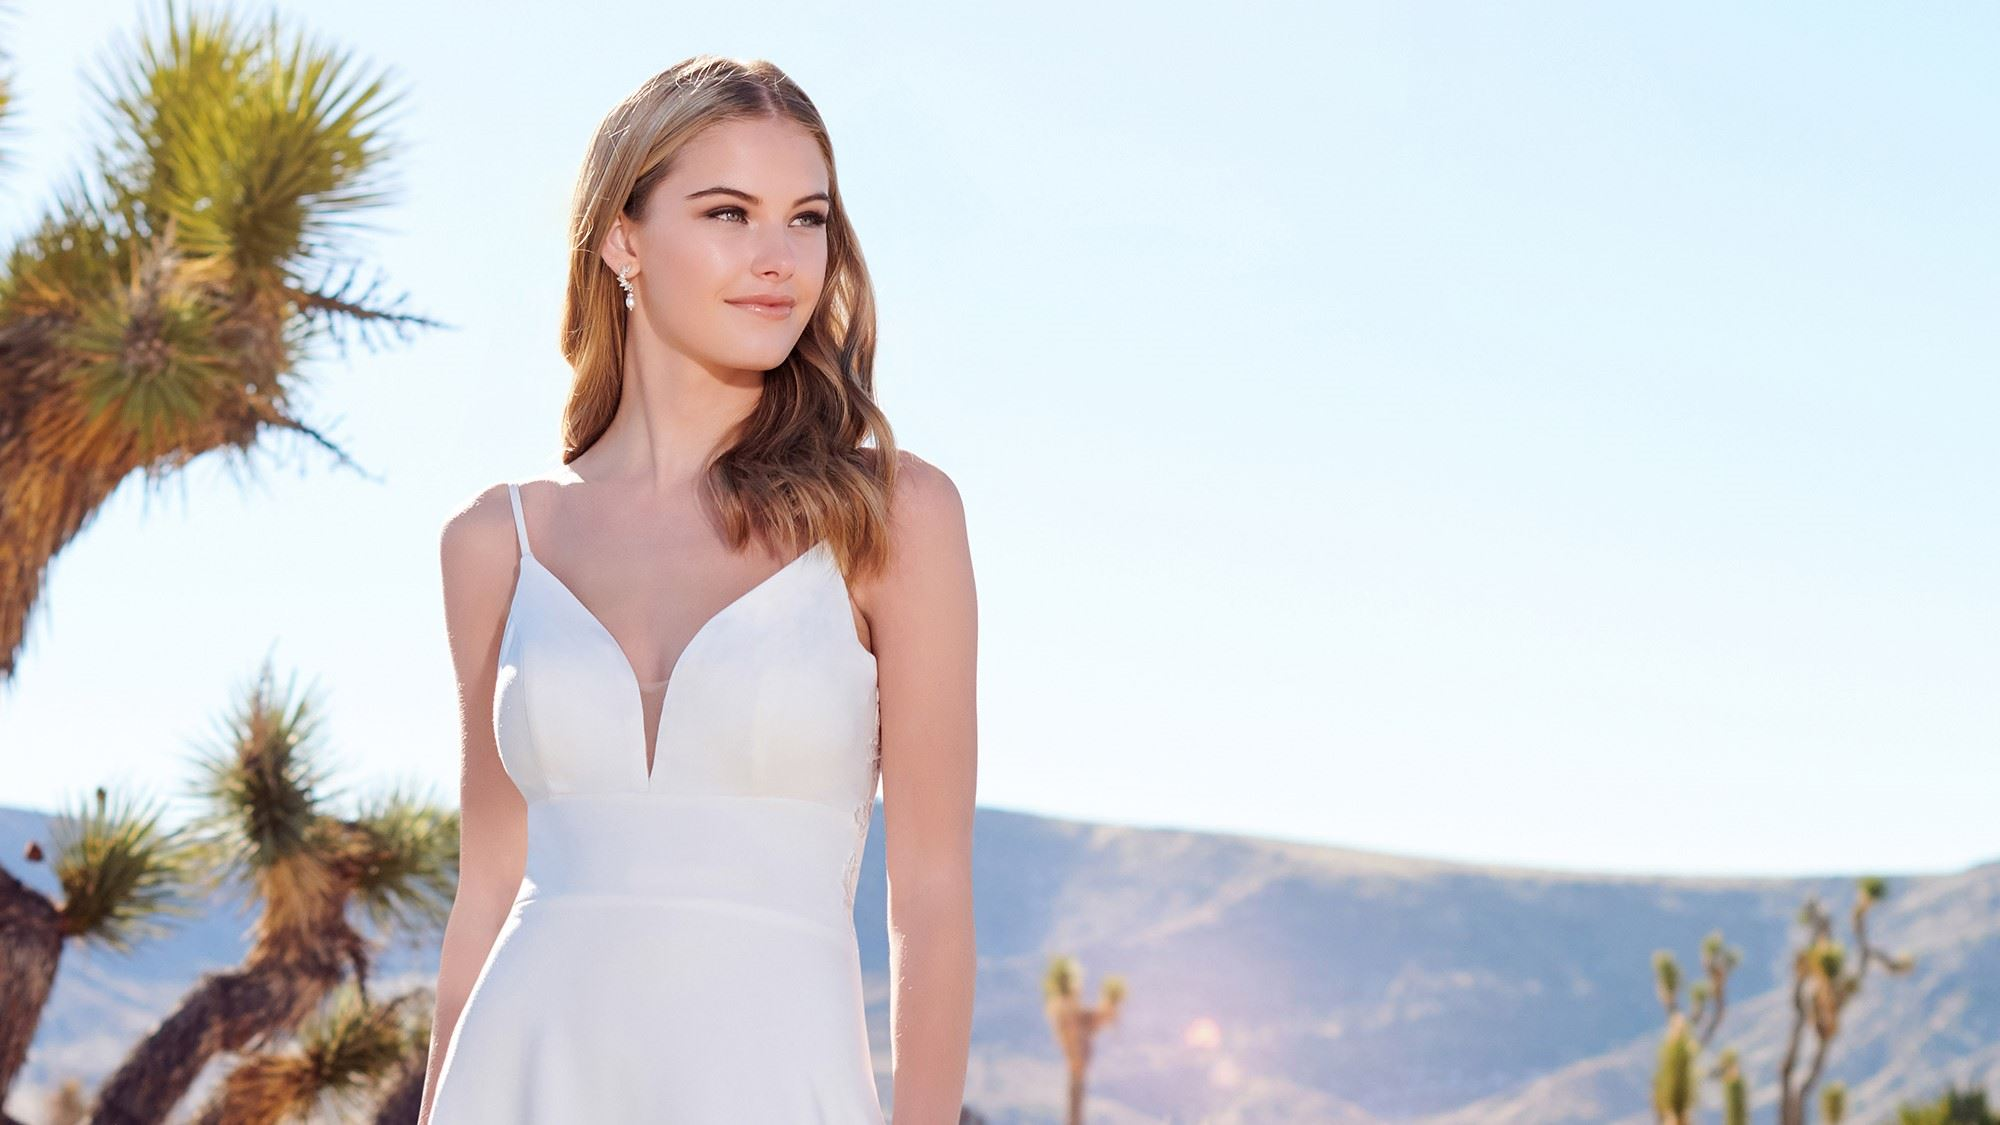 The Top 7 Wedding Dresses to Wear to Your Backyard Ceremony